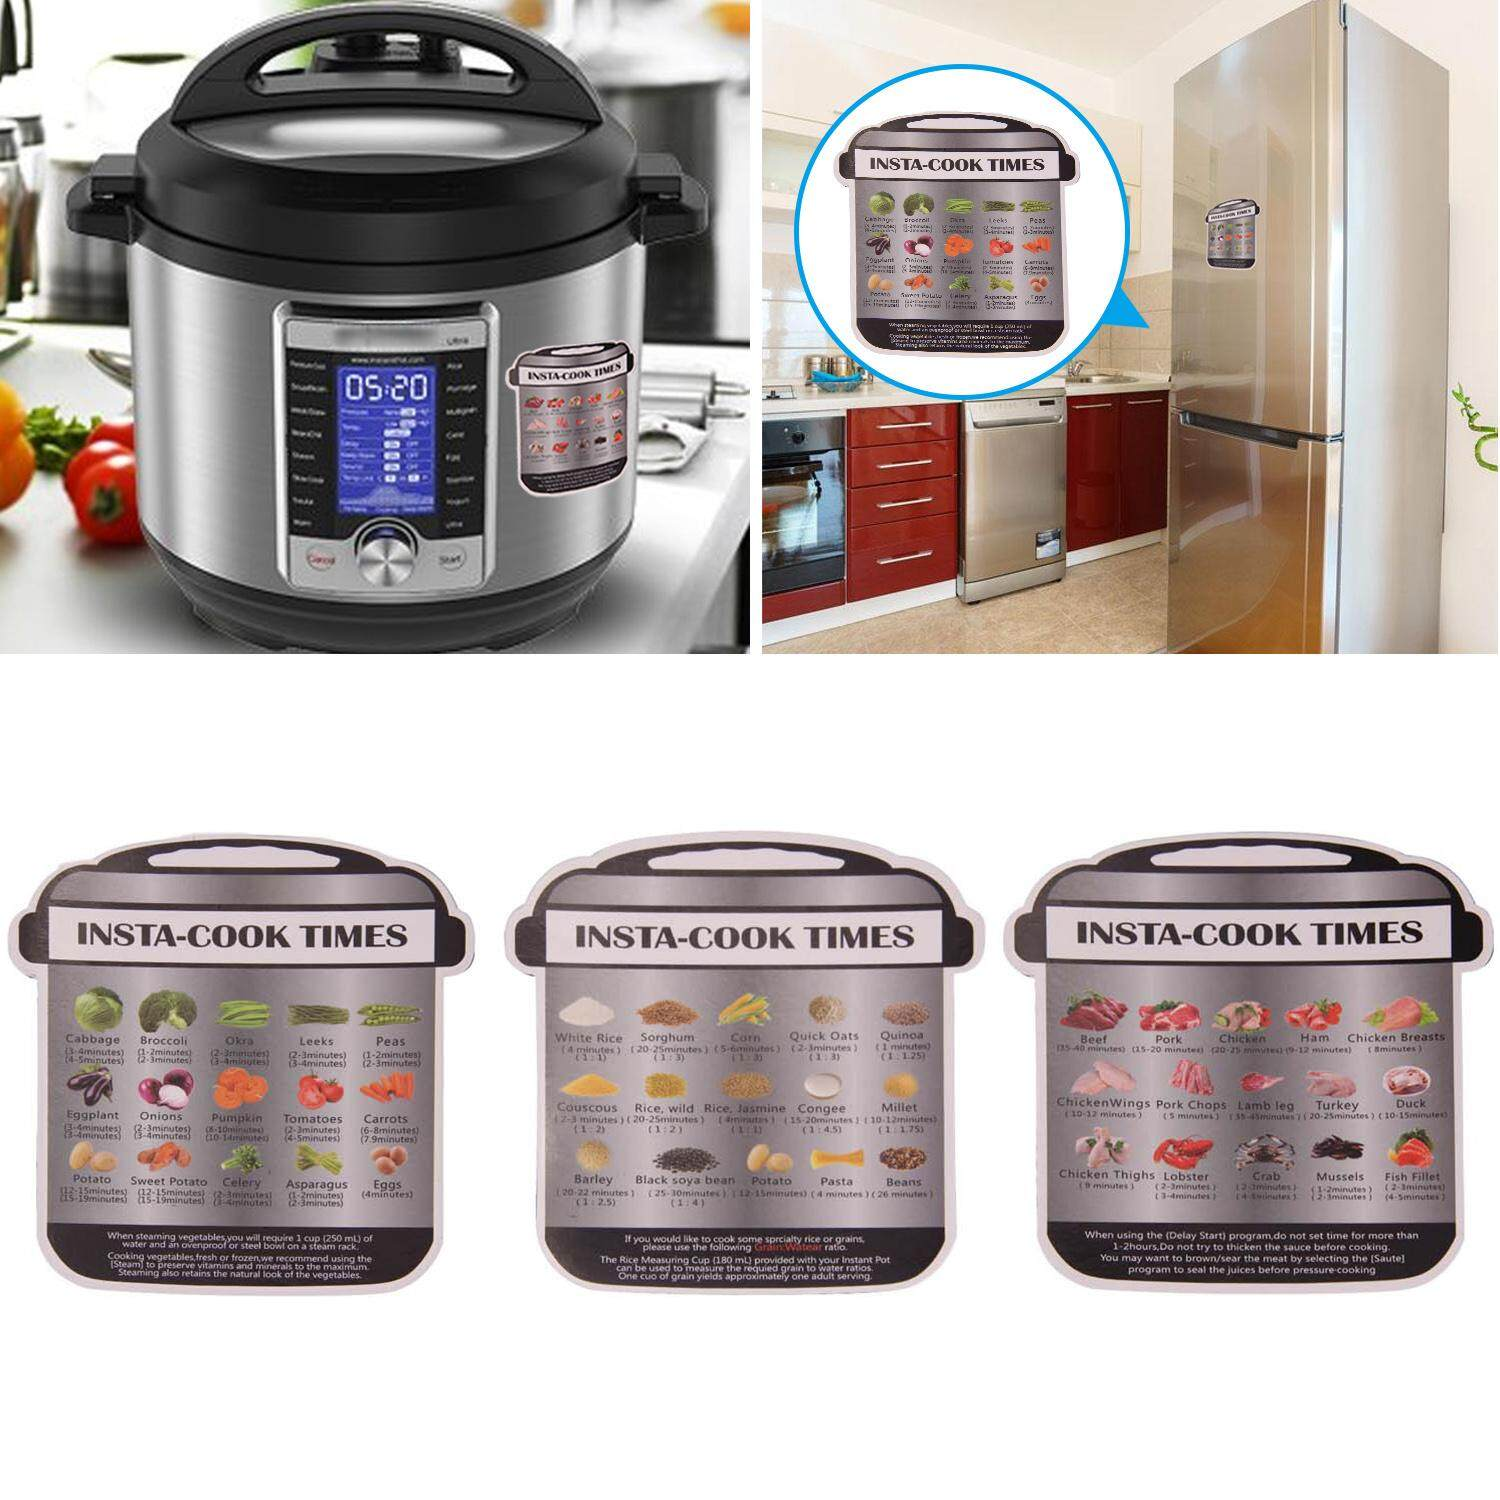 【free Shipping】vococal 3pcs Magnetic Cheat Sheets Compatible With Instant Pot Vegatables Grains Meat Cooking Times Kitchen Accessories By Vococal Shop.